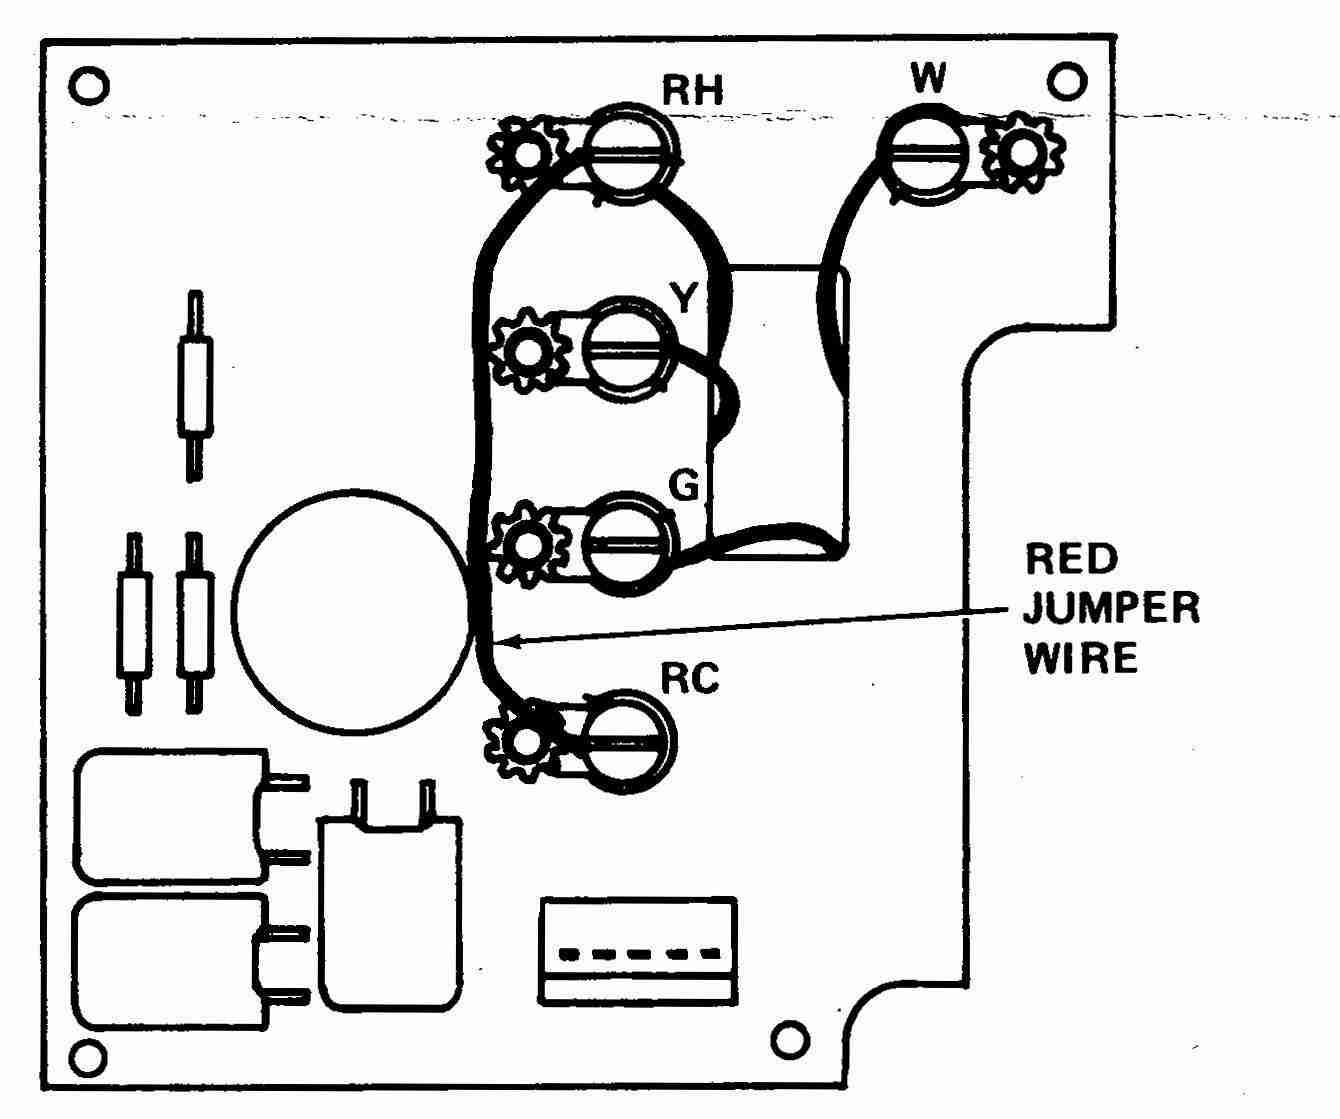 white rodgers wiring diagrams wiring diagram third levelhow wire a white rodgers room thermostat, white rodgers thermostat honeywell st9120u wiring diagram white rodgers wiring diagrams